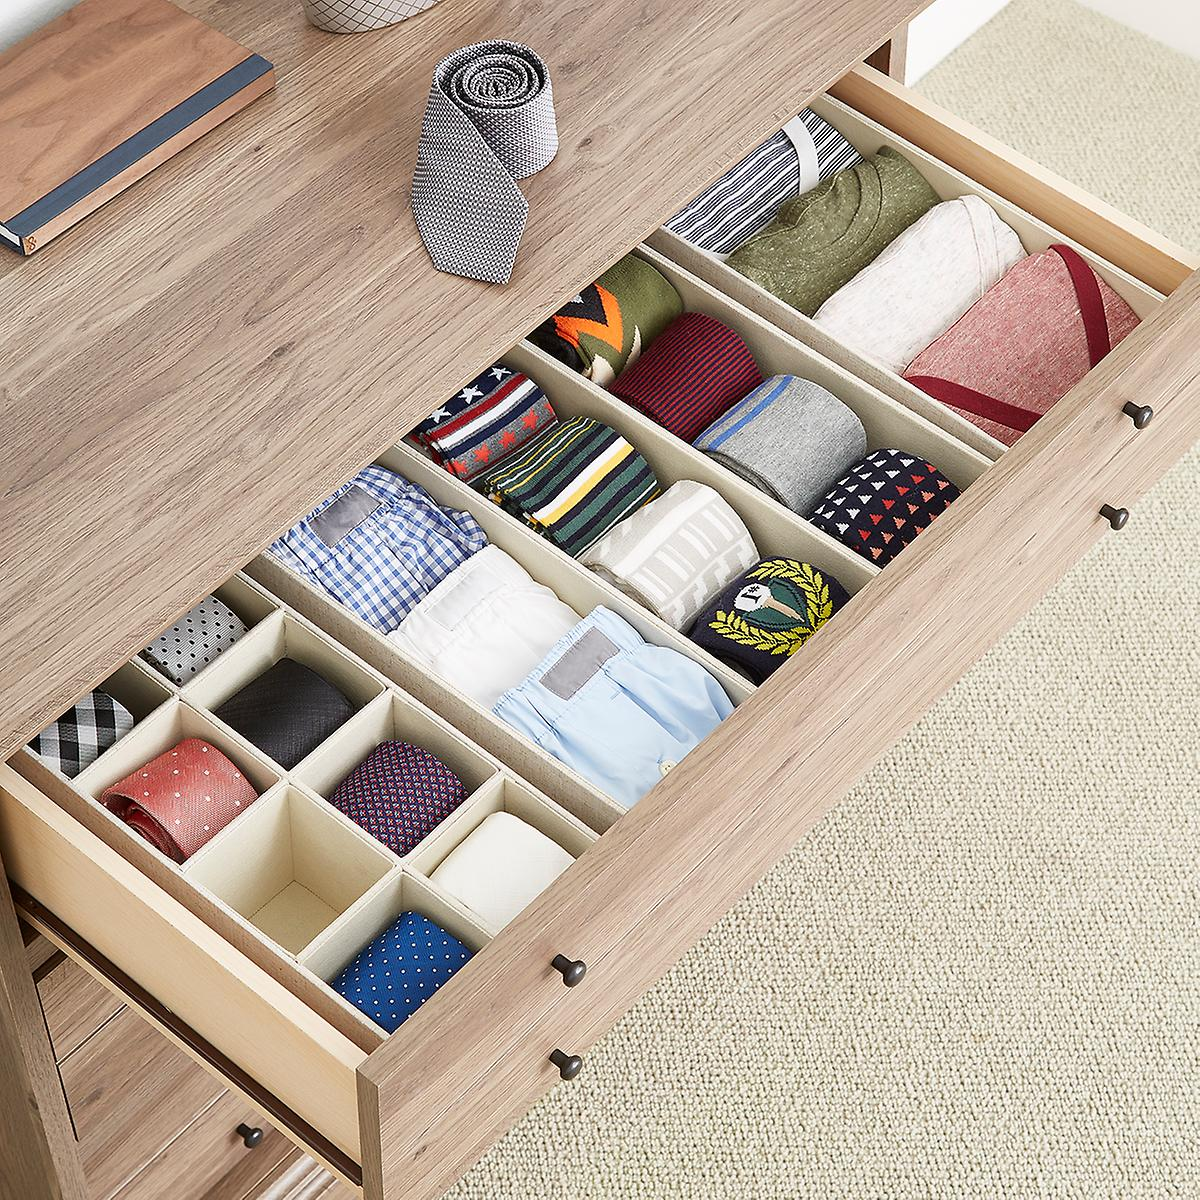 adf5be838bcf Linen Drawer Organizers | The Container Store